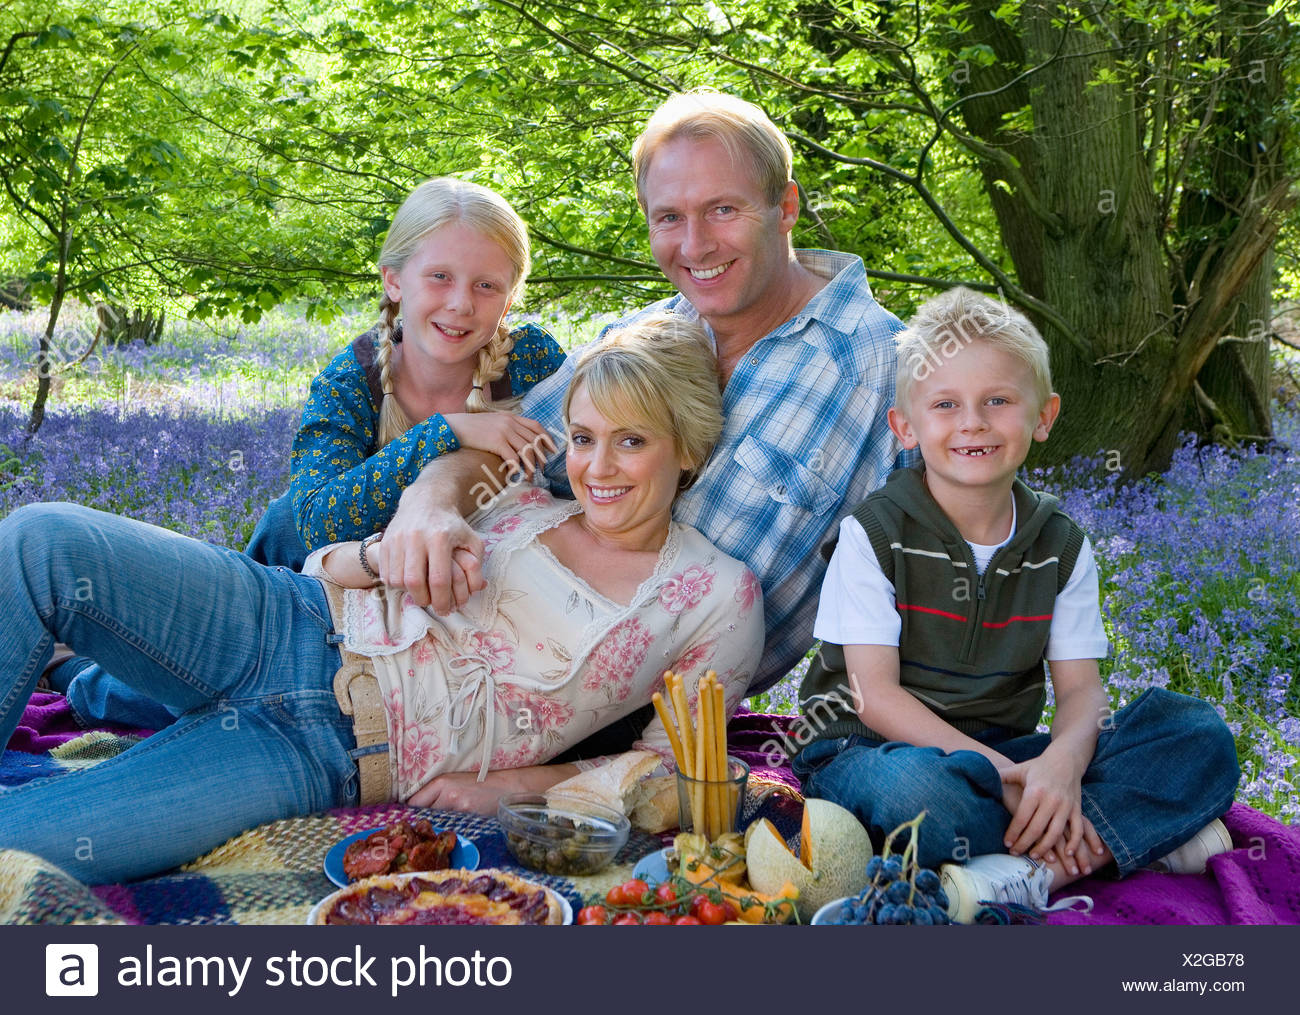 Family picnicking in field of bluebell flowers - Stock Image